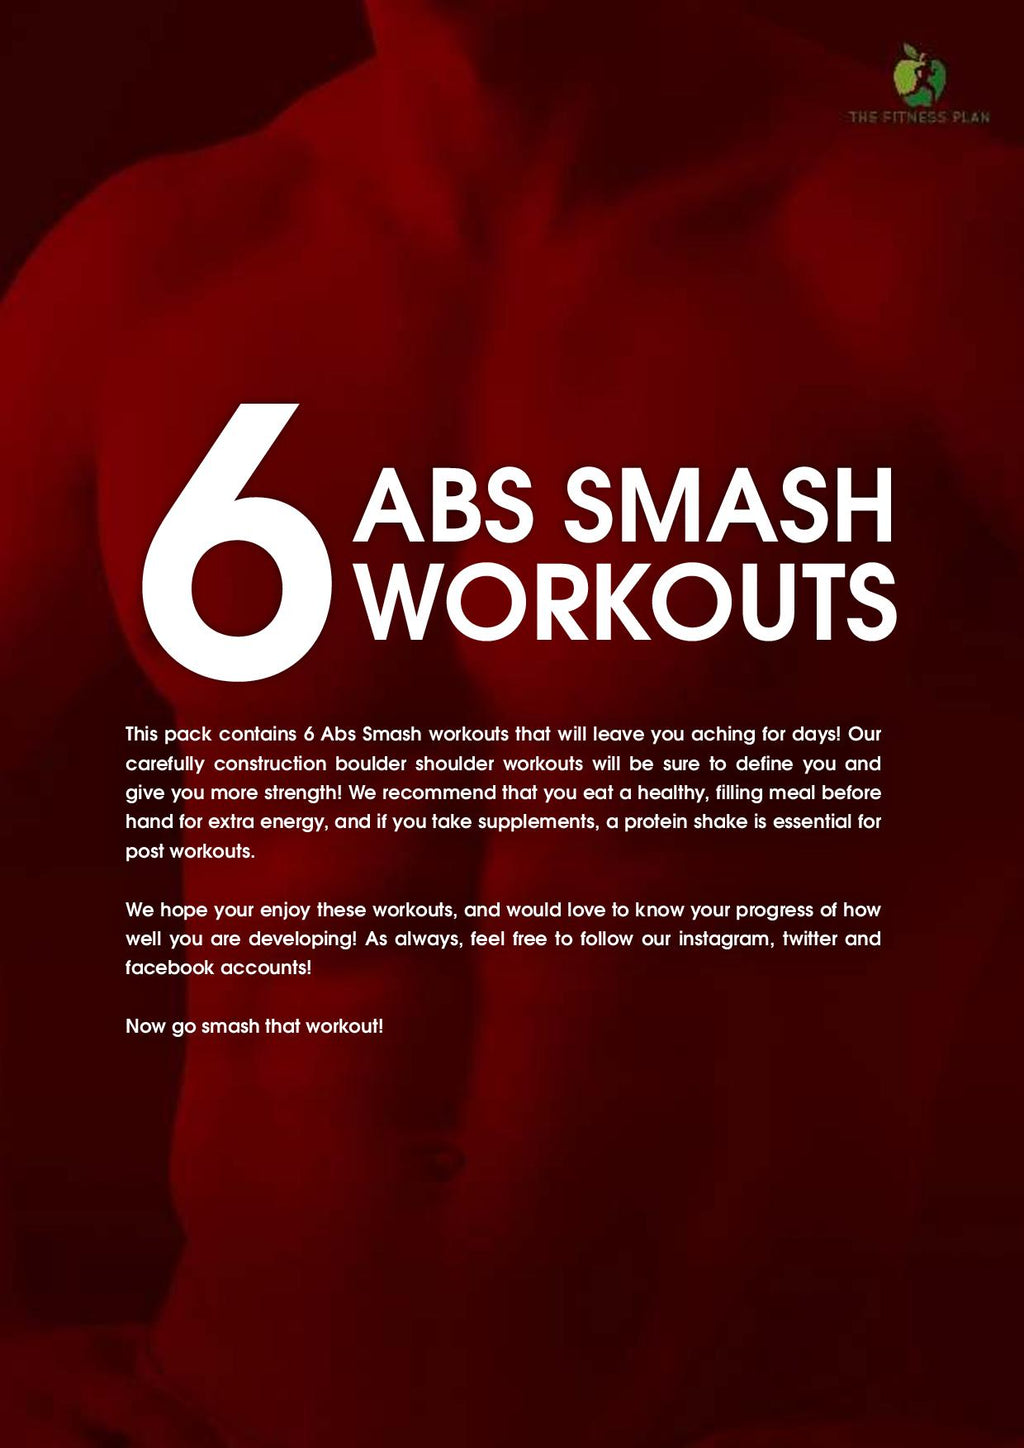 6 Ab Smash Workouts